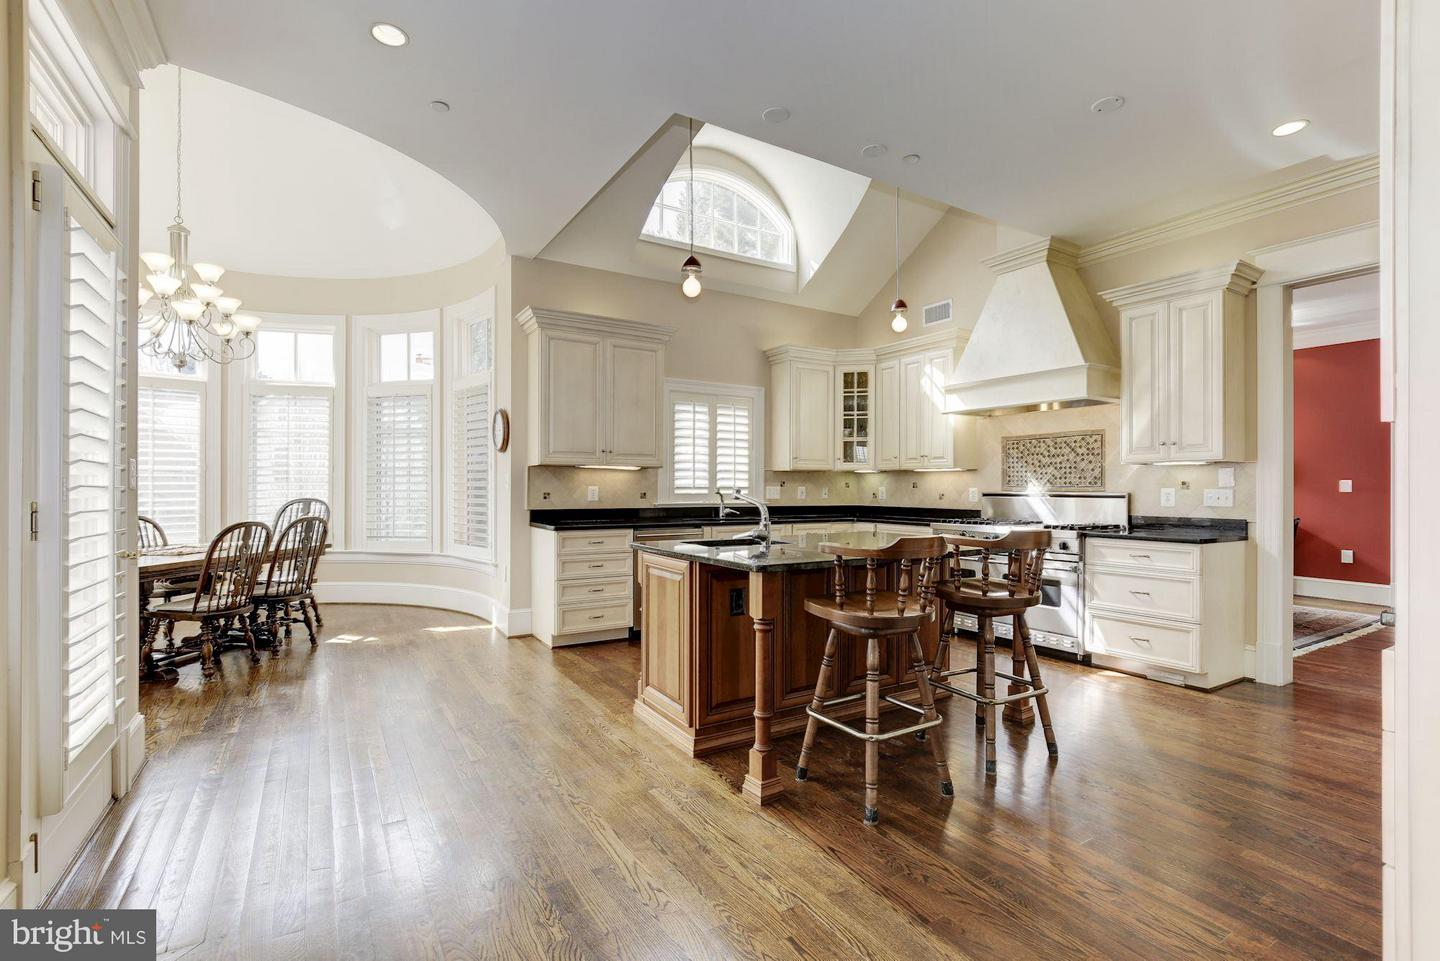 Single Family Home for Sale at 116 Melrose St E 116 Melrose St E Chevy Chase, Maryland 20815 United States